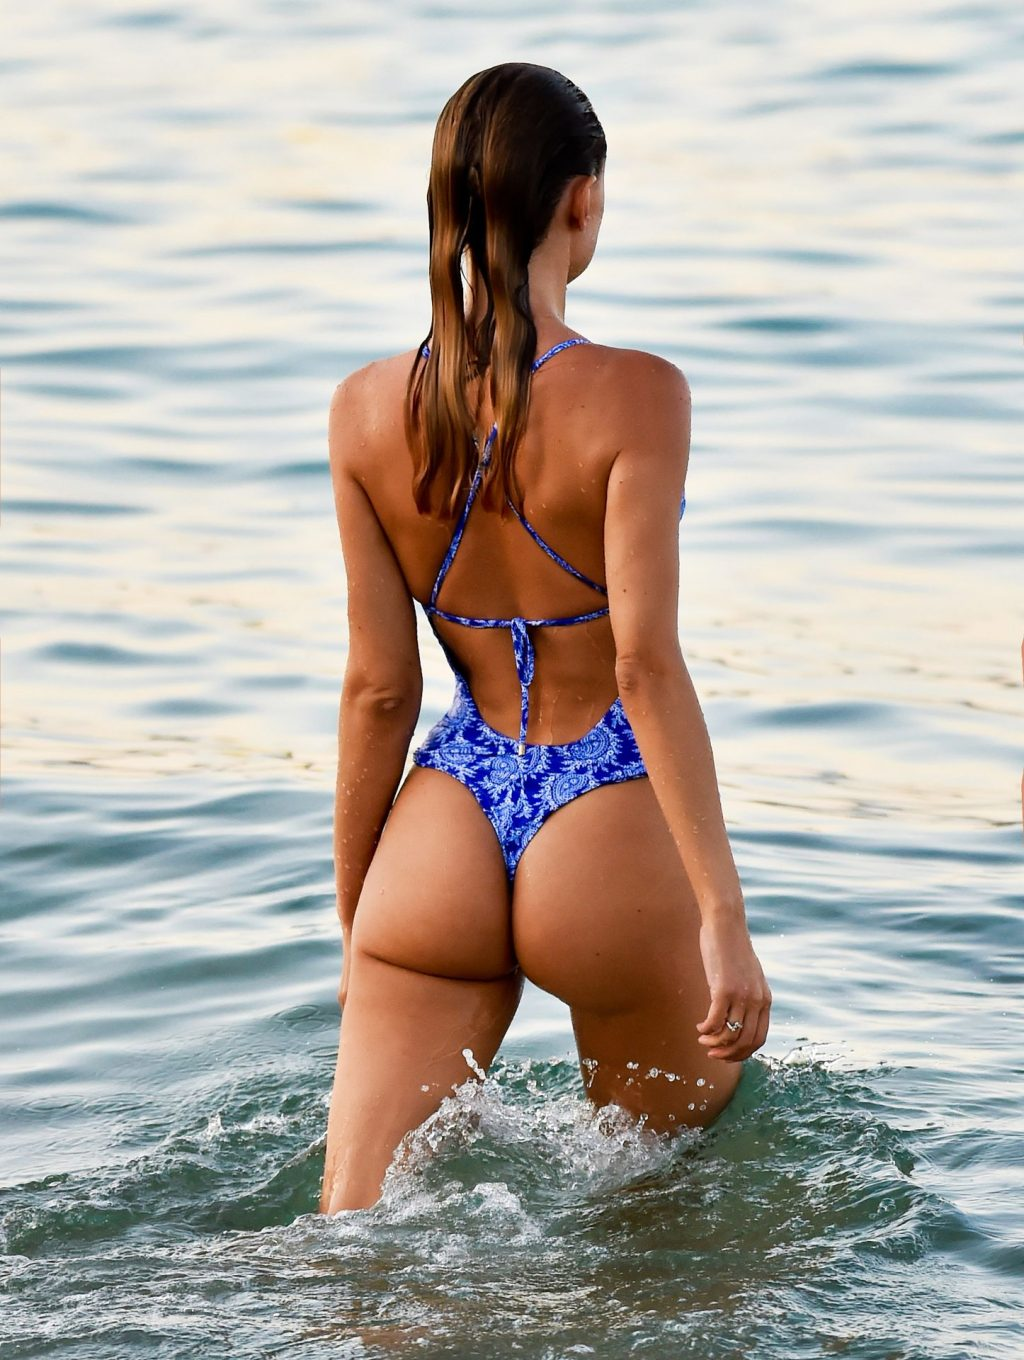 Kimberley Garner Goes For A Evening Dip As She Hits The Beach In Miami (14 Photos)